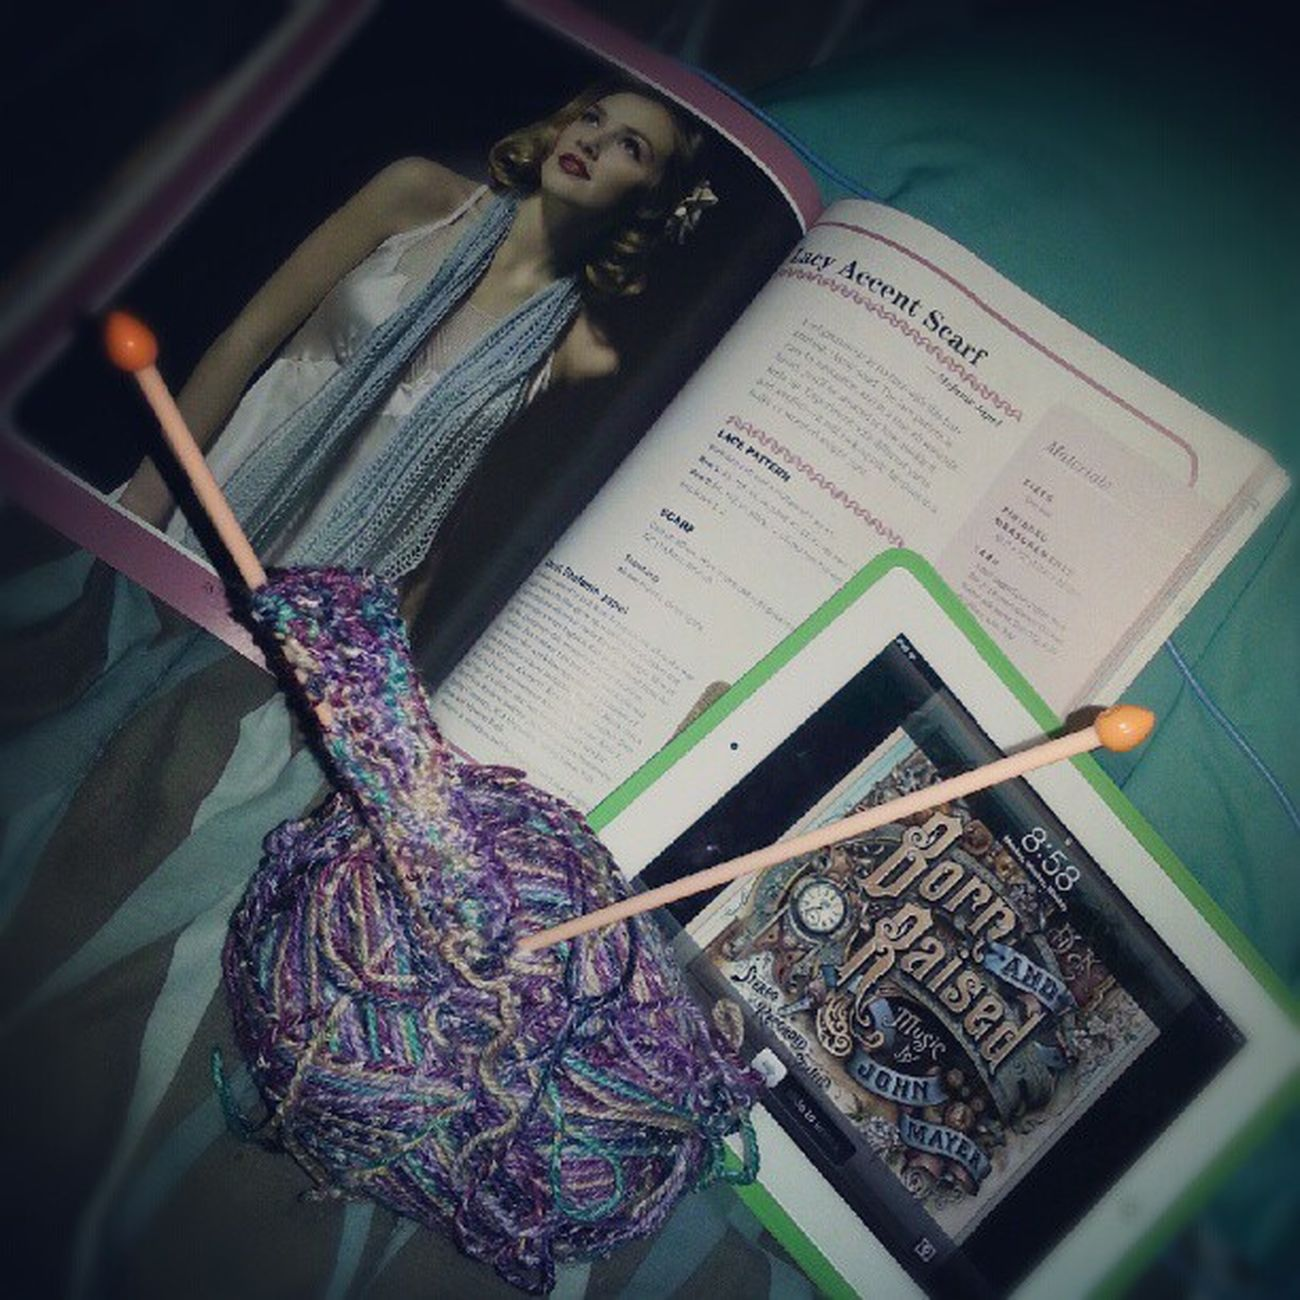 My night. Knitpattern Lace Knitting Yarn johnmayer scarf prefallknitting